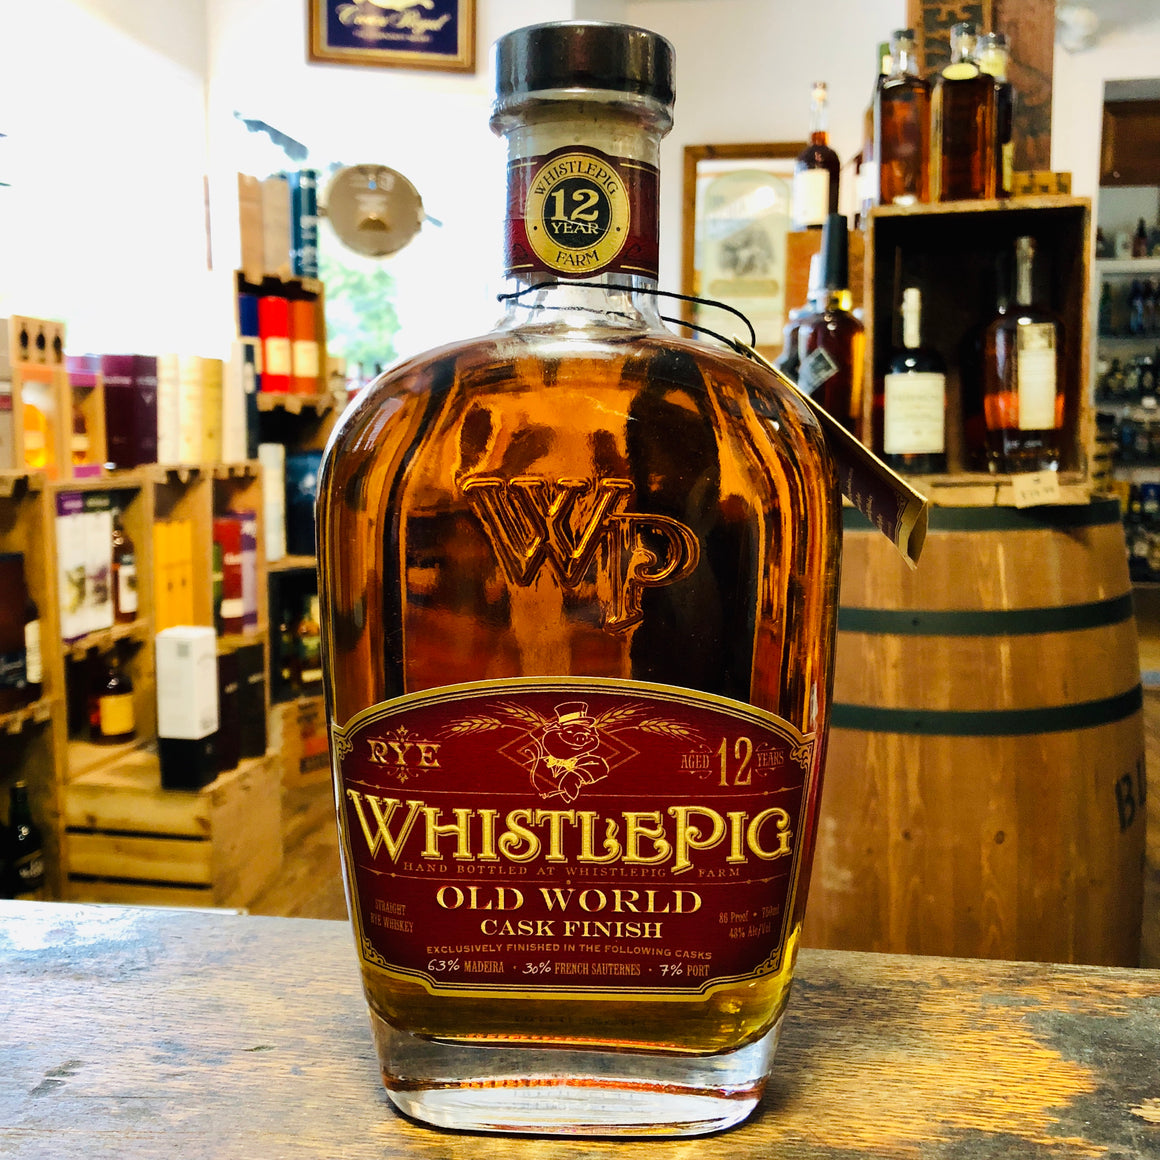 WHISTLEPIG 12 YEAR OLD WORLD CASK FINISH RYE WHISKEY 750ML